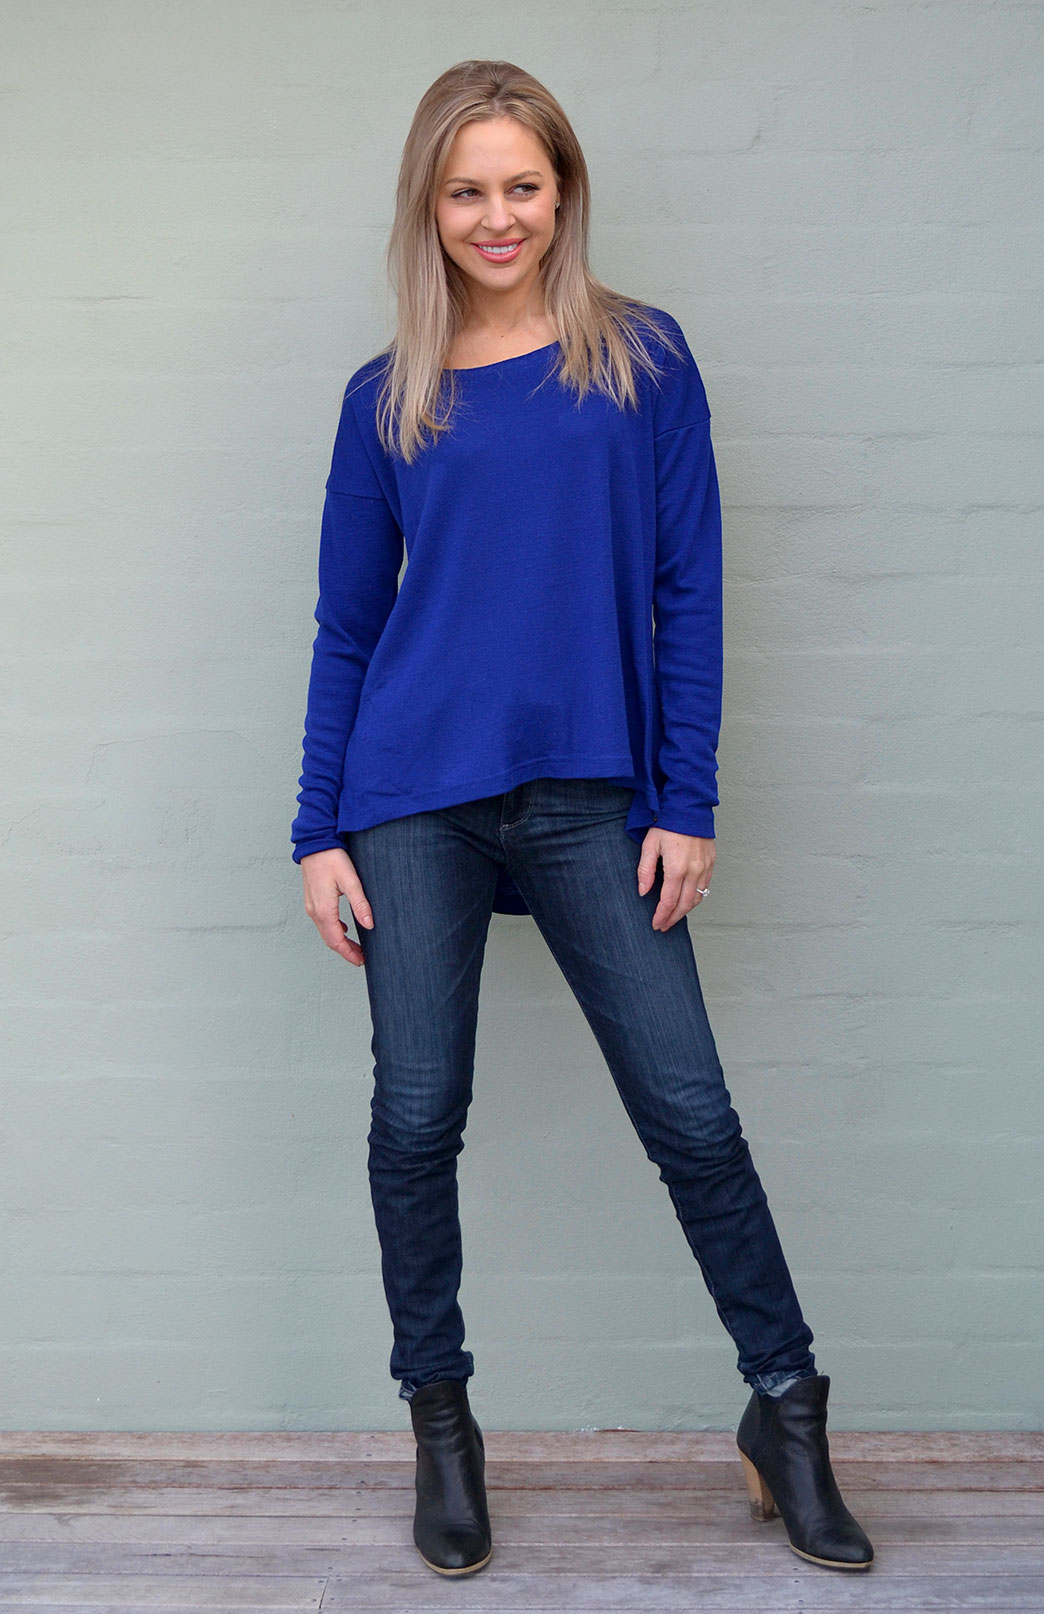 Lola Top - Women's Sapphire Blue Wool Long Sleeve Winter Top - Smitten Merino Tasmania Australia